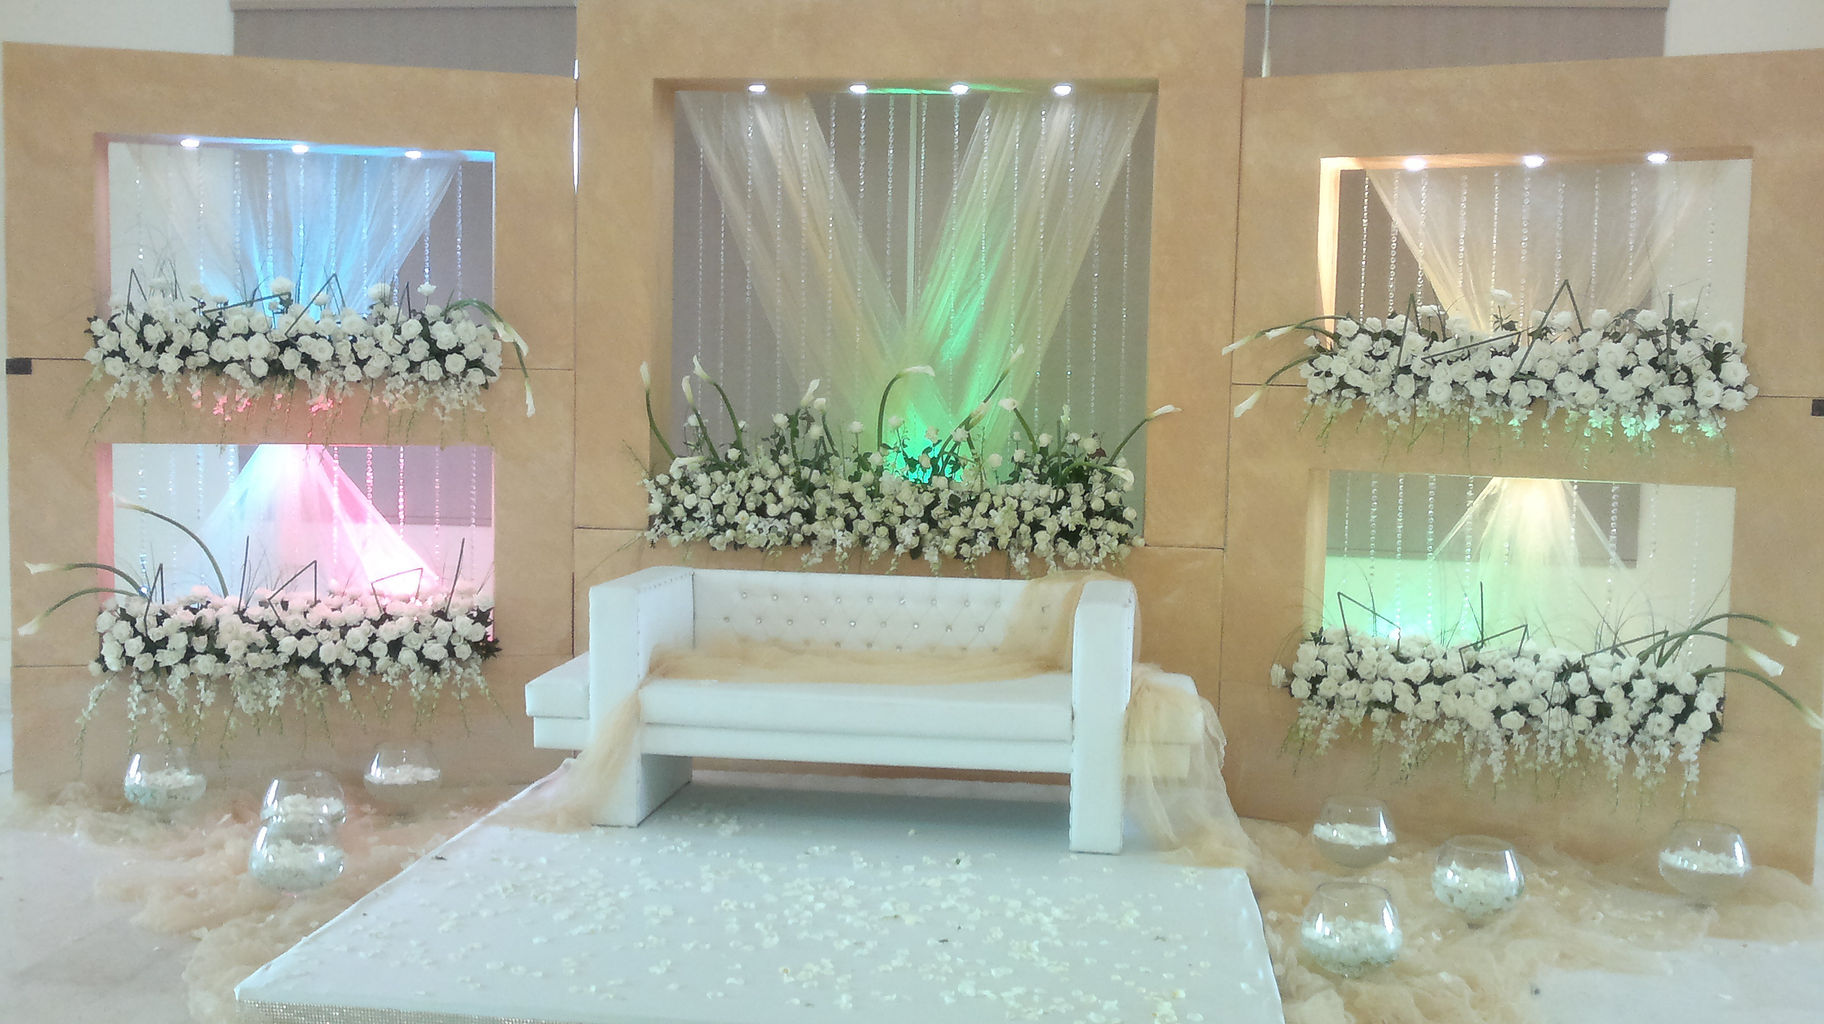 Wedding church decoration in lebanon all the best ideas about marriage wedding decoration lebanon image collections wedding junglespirit Image collections